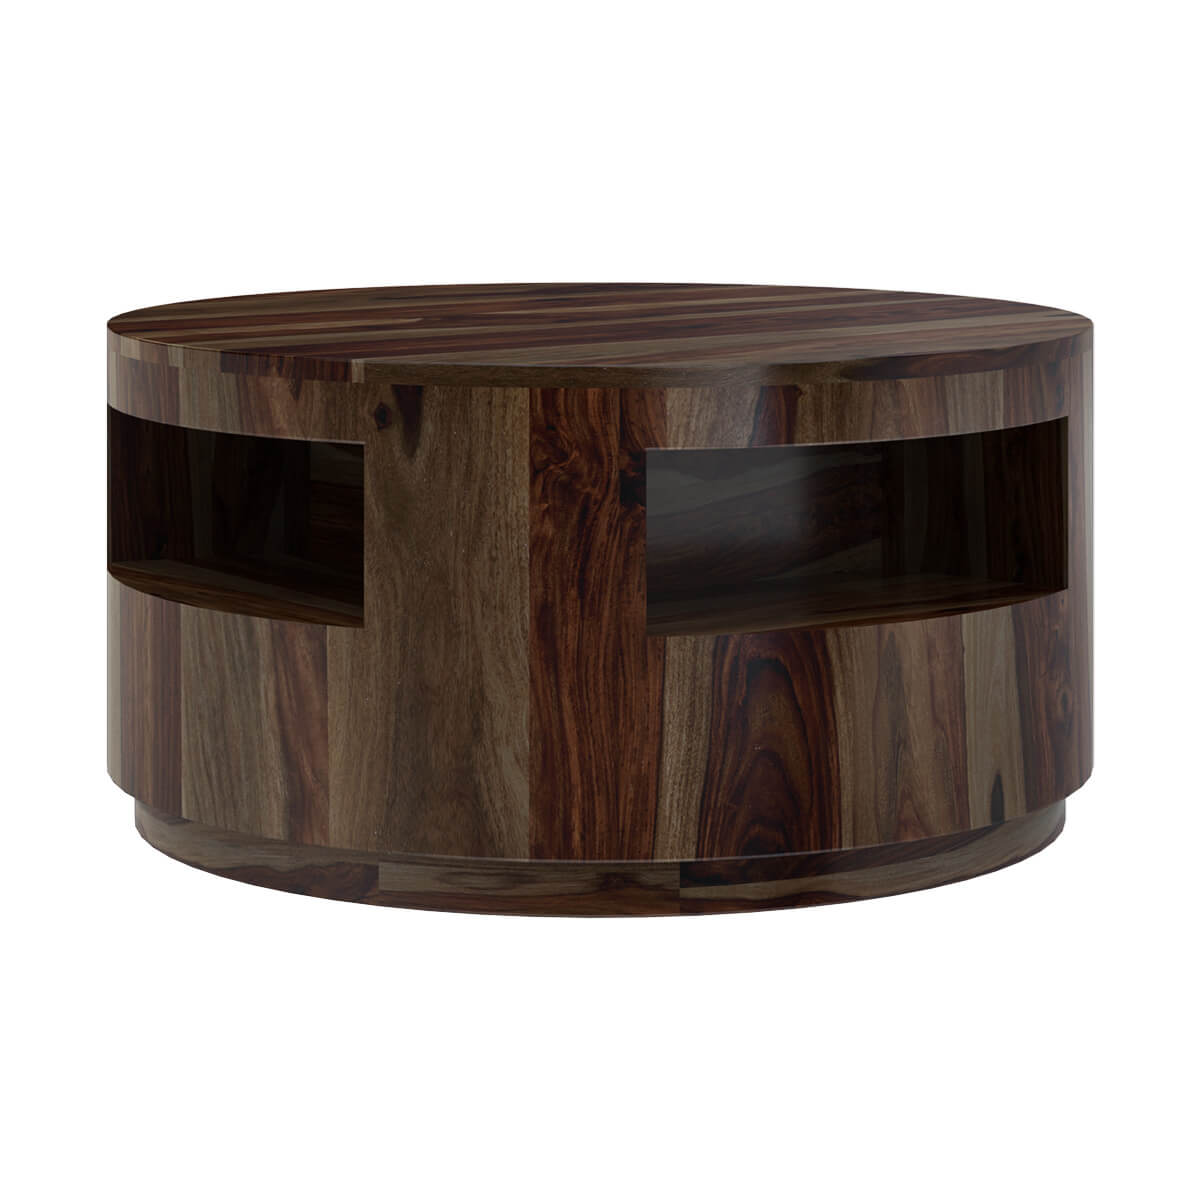 Round Coffee Table With Chairs.Ladonia Rustic Contemporary 3 Piece Round Coffee Table Set